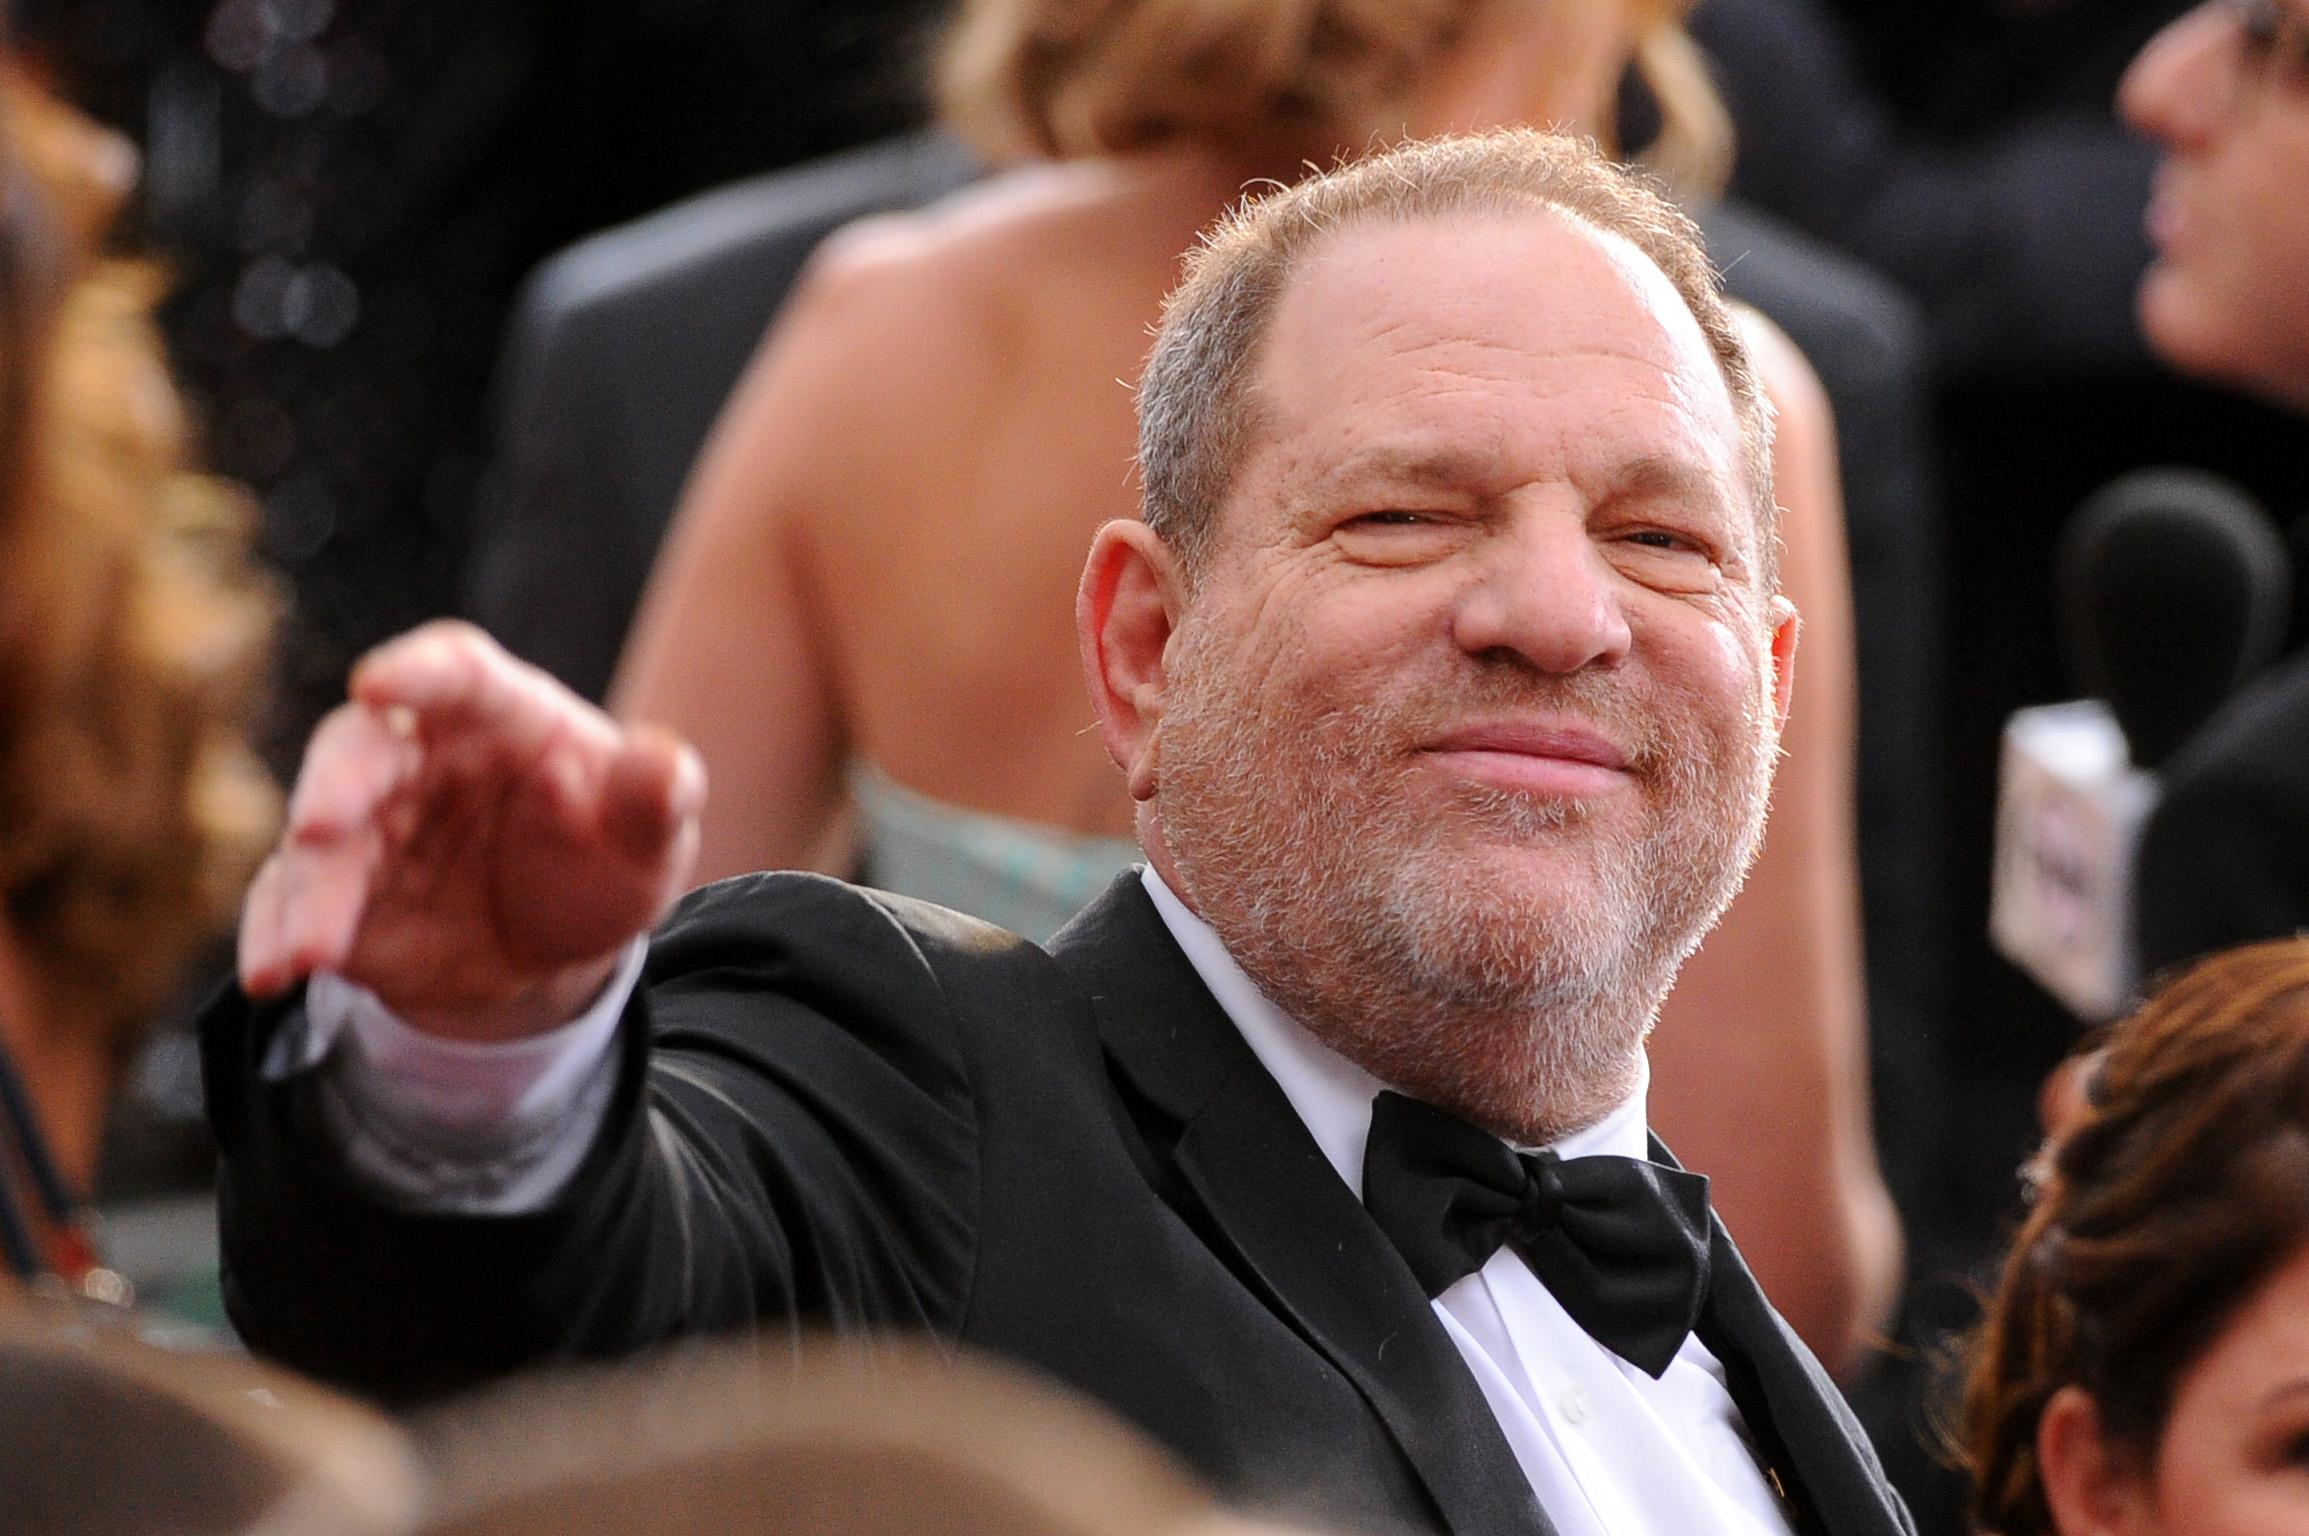 A reporter detailed graphic incident with Harvey Weinstein amid sexual harassment controversy